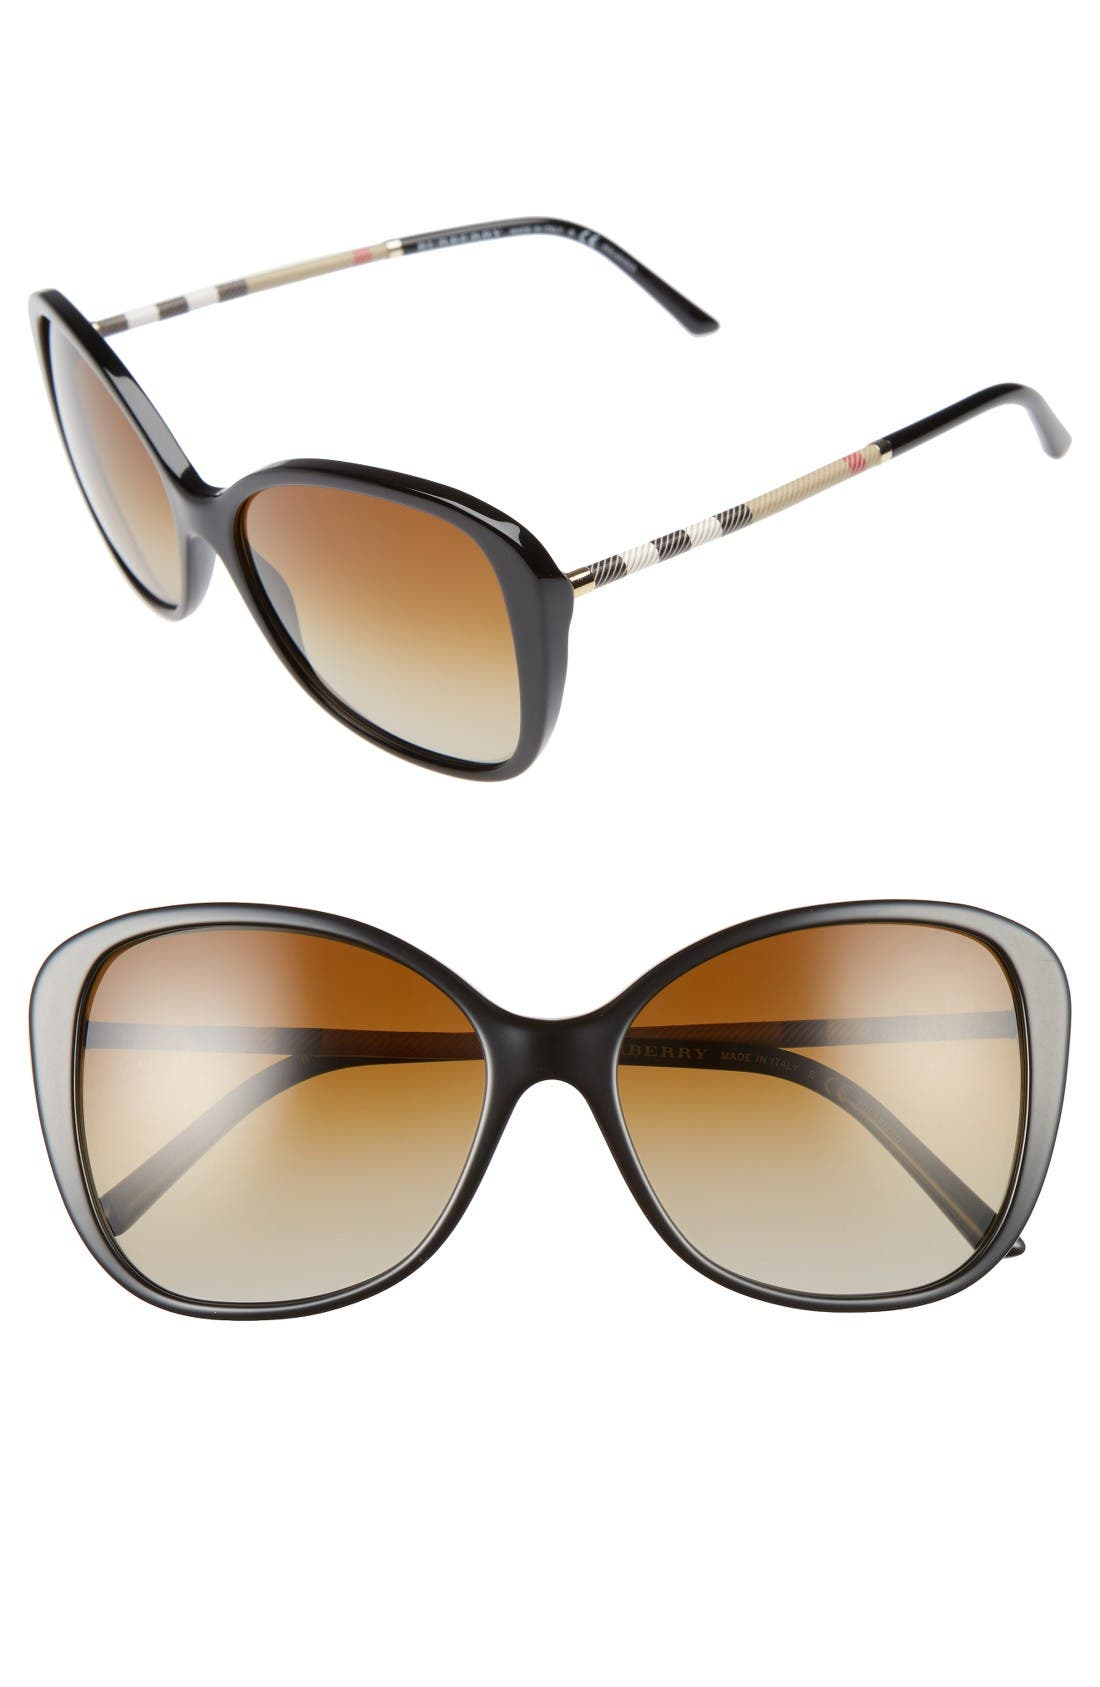 Burberry 57mm Polarized Sunglasses